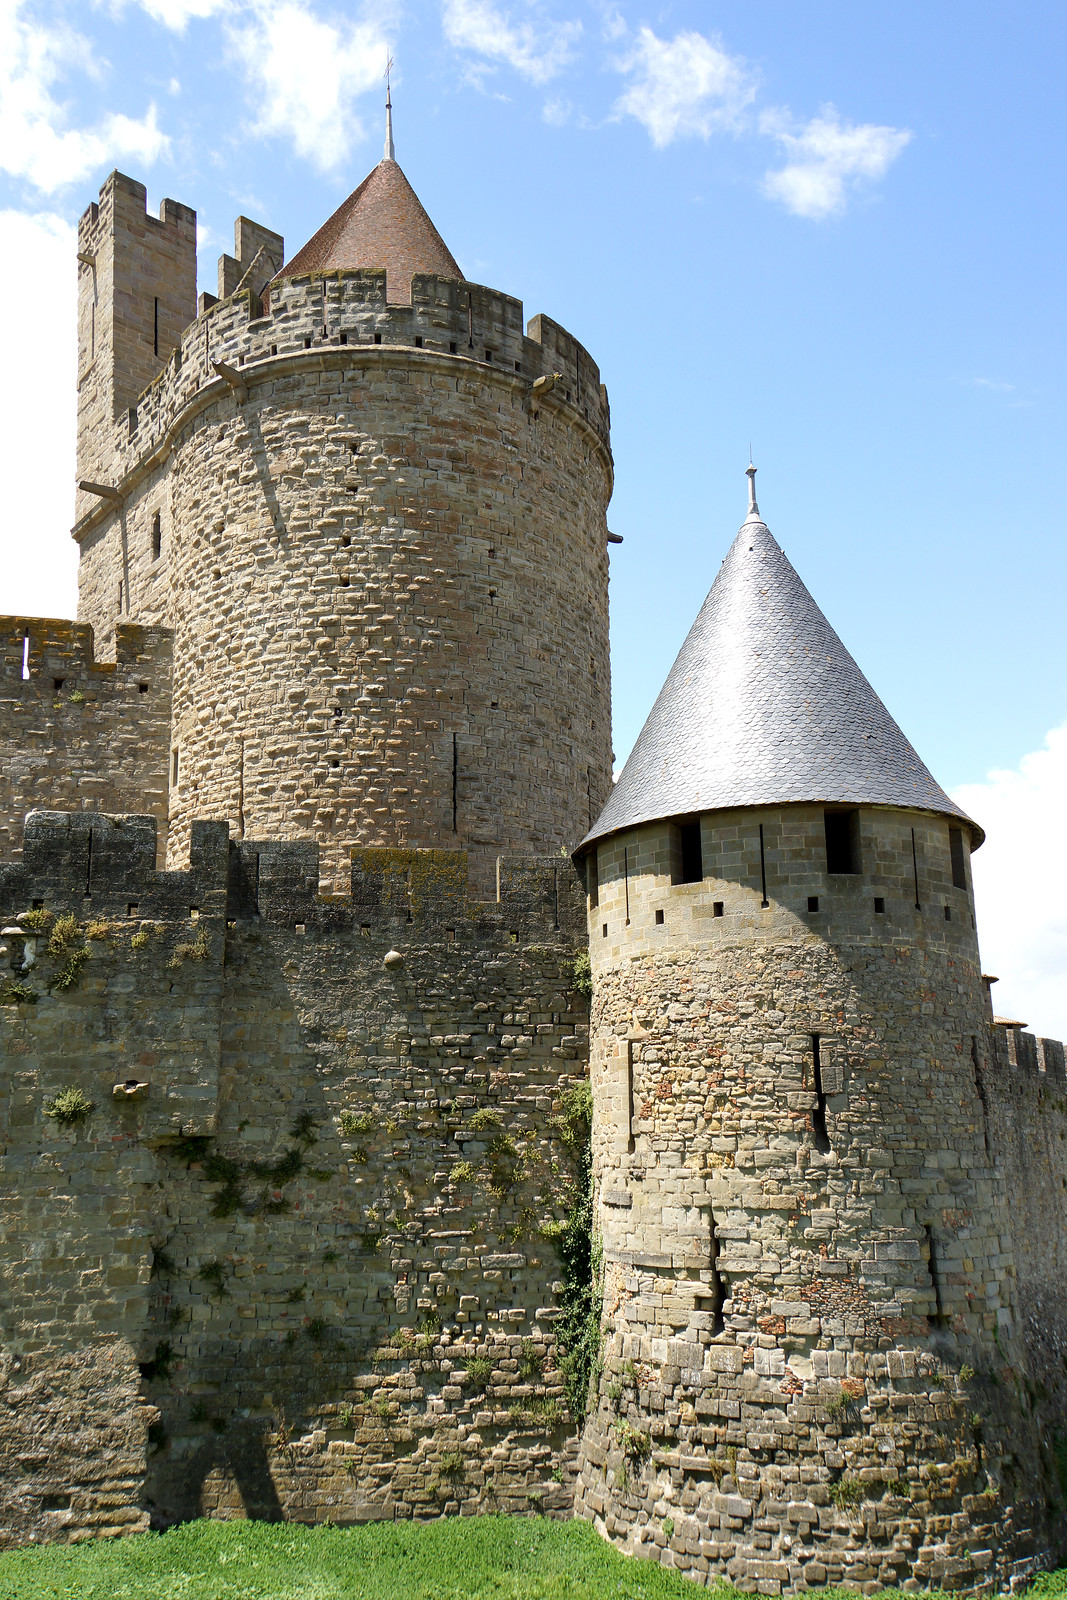 France-002290 - Towers